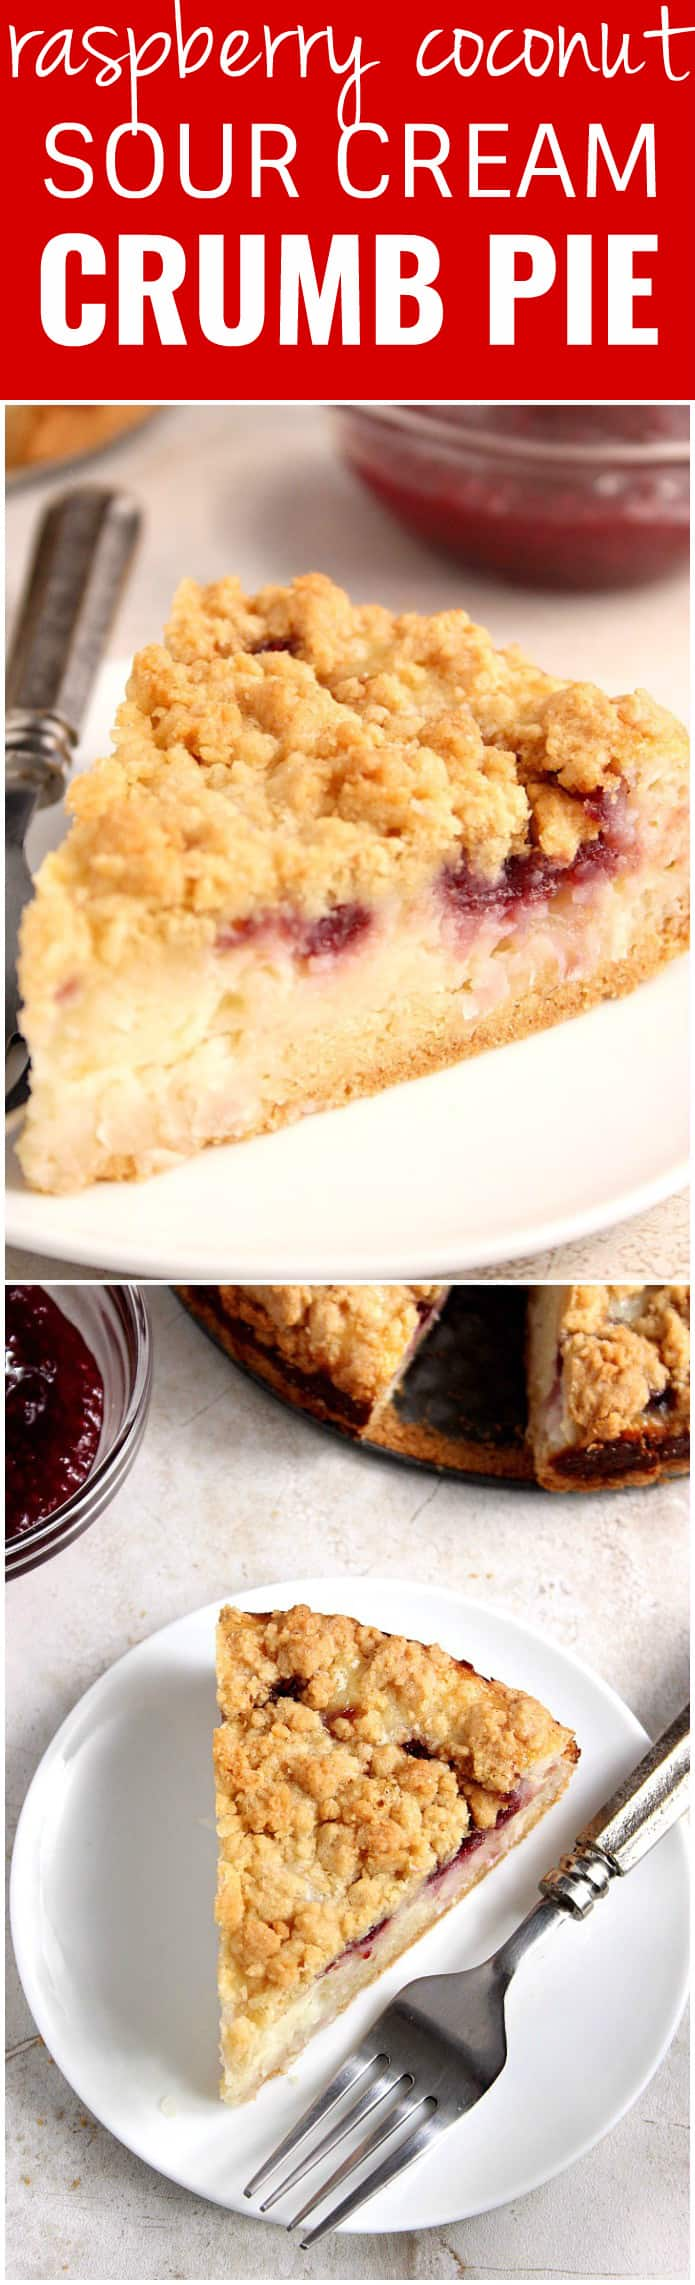 raspberry coconut sour cream crumb pie recipe long1 Raspberry Coconut Sour Cream Crumb Pie Recipe